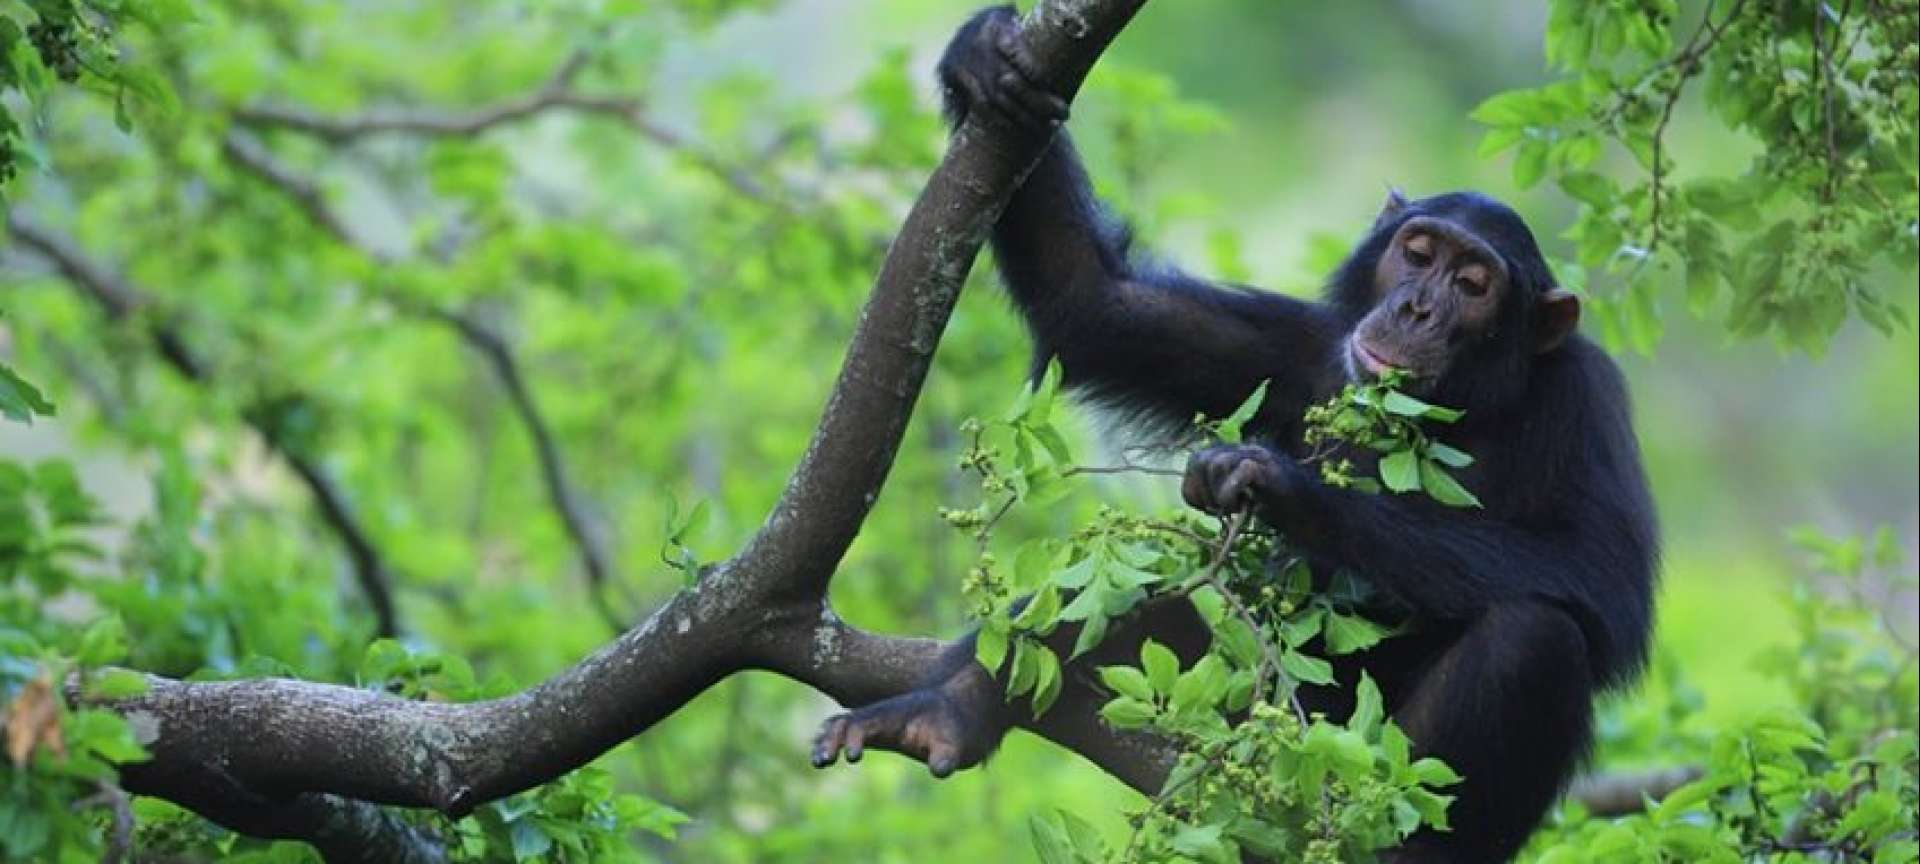 Chimpanzee trekking makes getting active fun